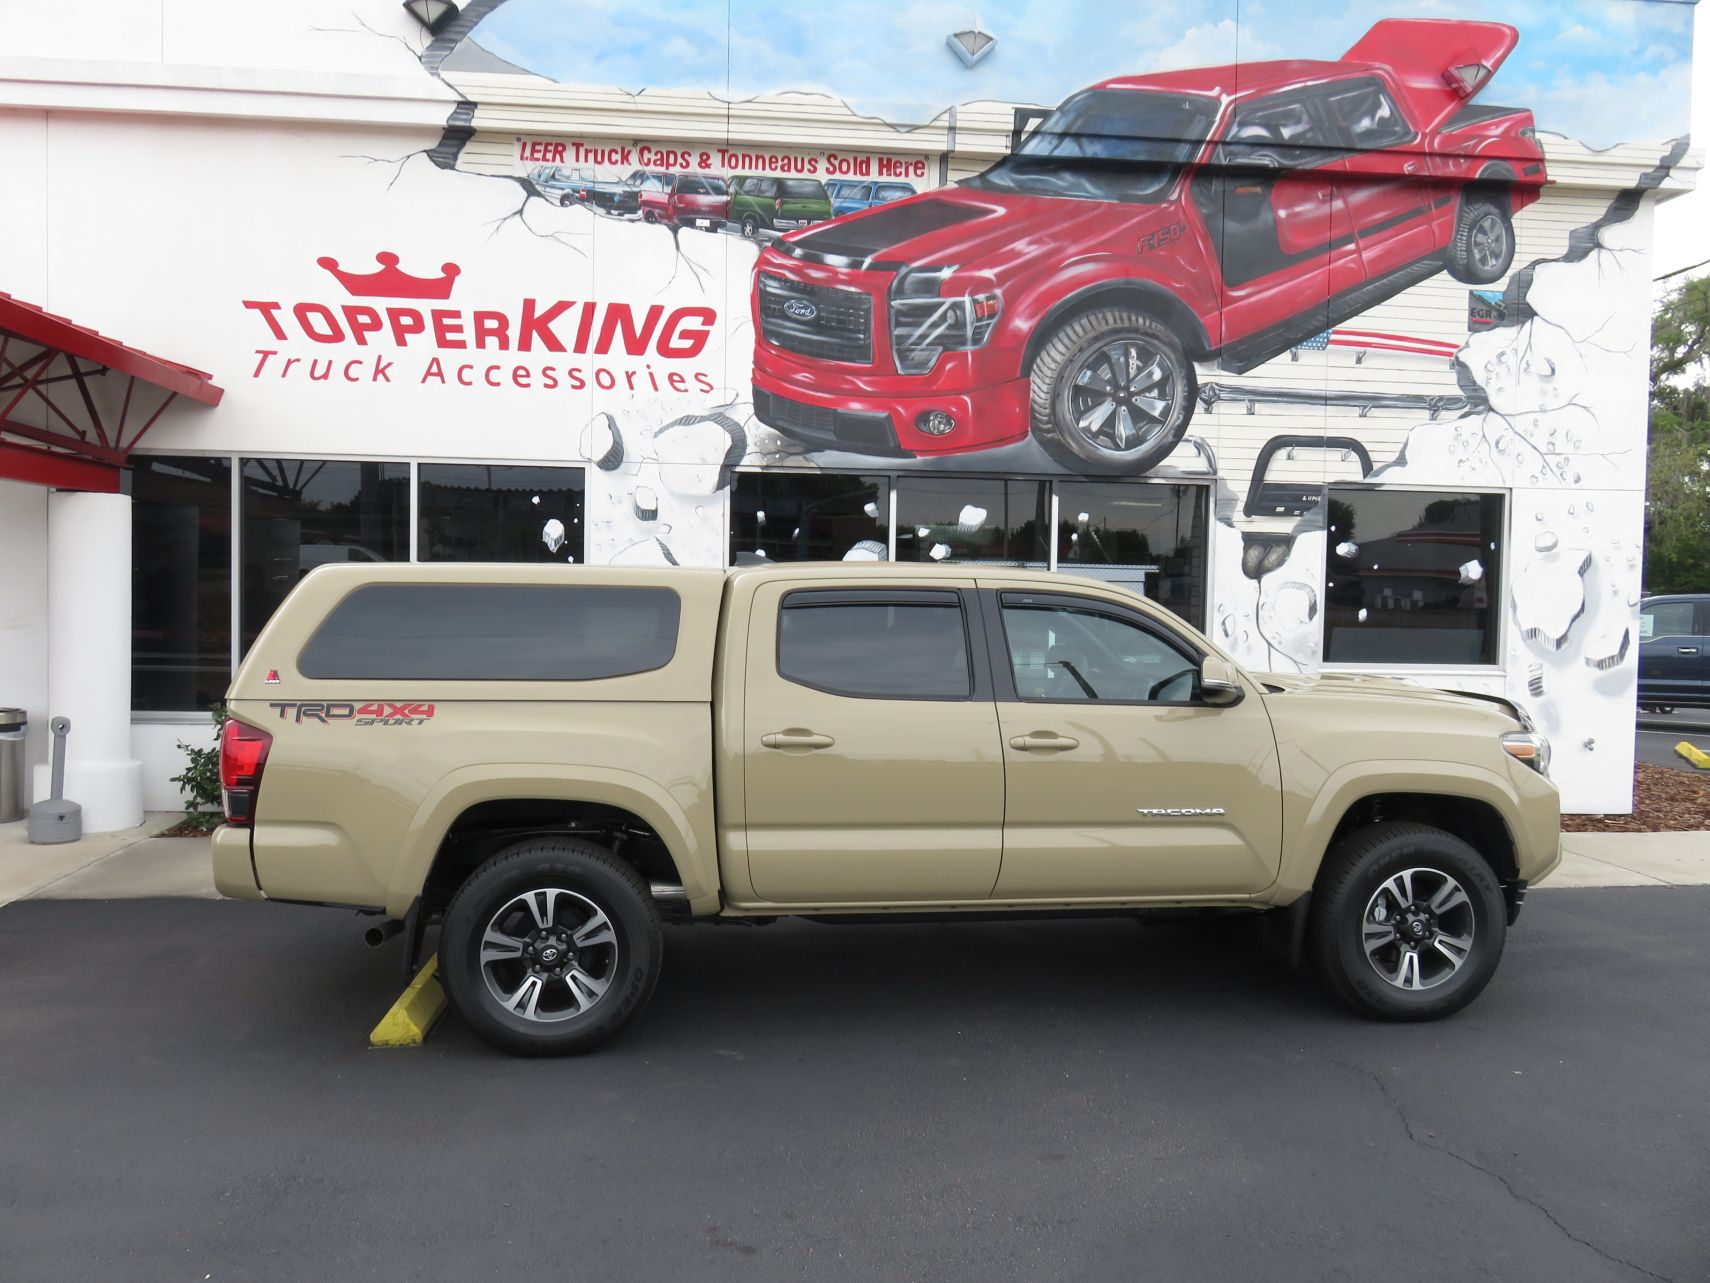 Toyota Tacoma Topper >> 2018 Toyota Tacoma Leer 100xq Bug Shield Topperking